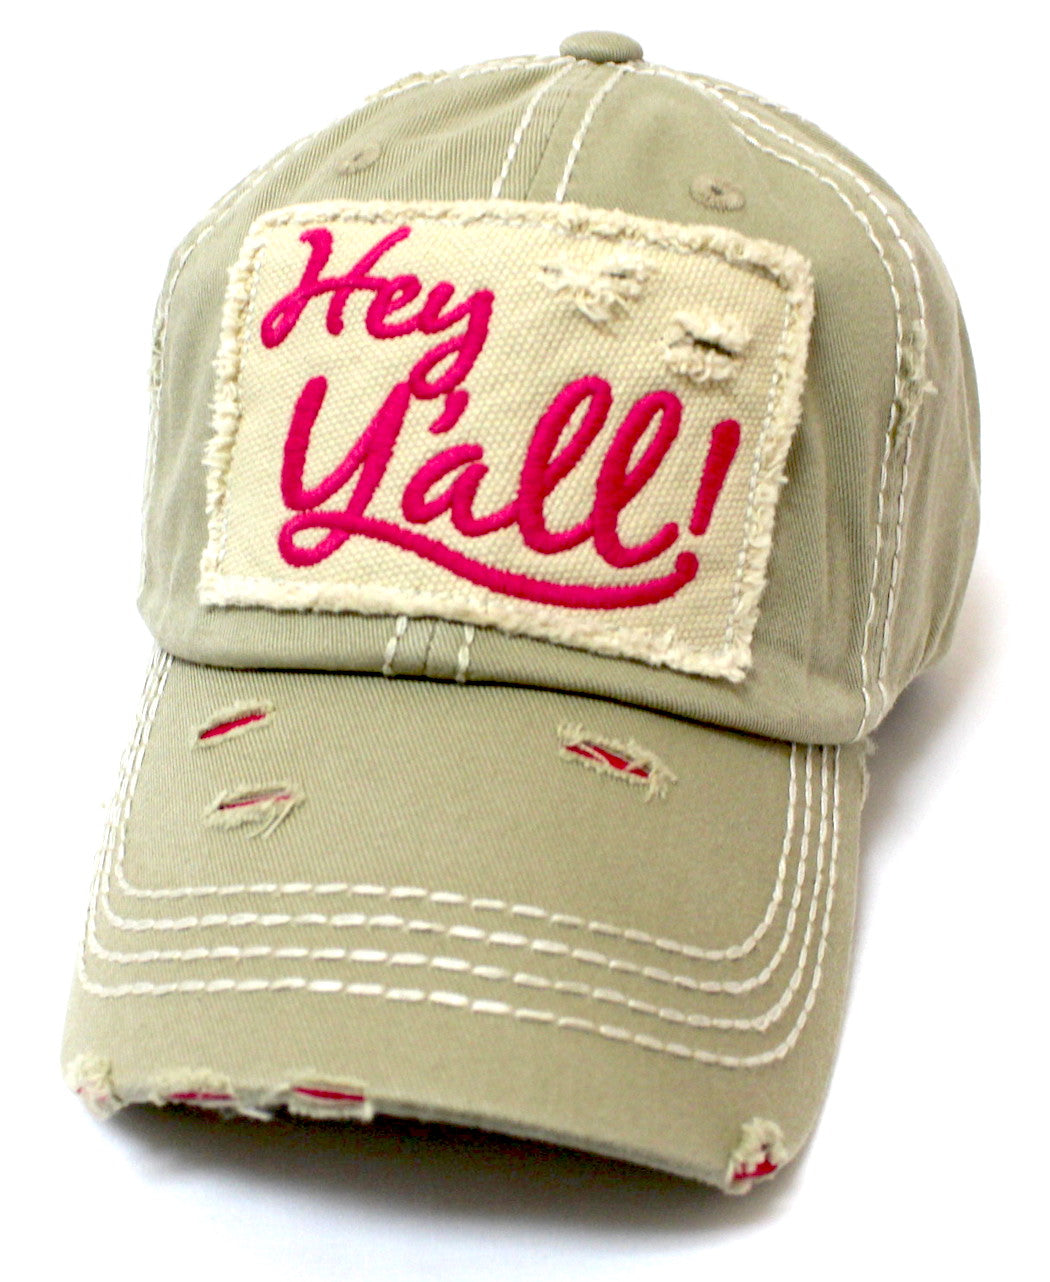 CAPS 'N VINTAGE New!! Khaki/Barbie Pink Hey Y'all! Patch Embroidery Hat - Caps 'N Vintage